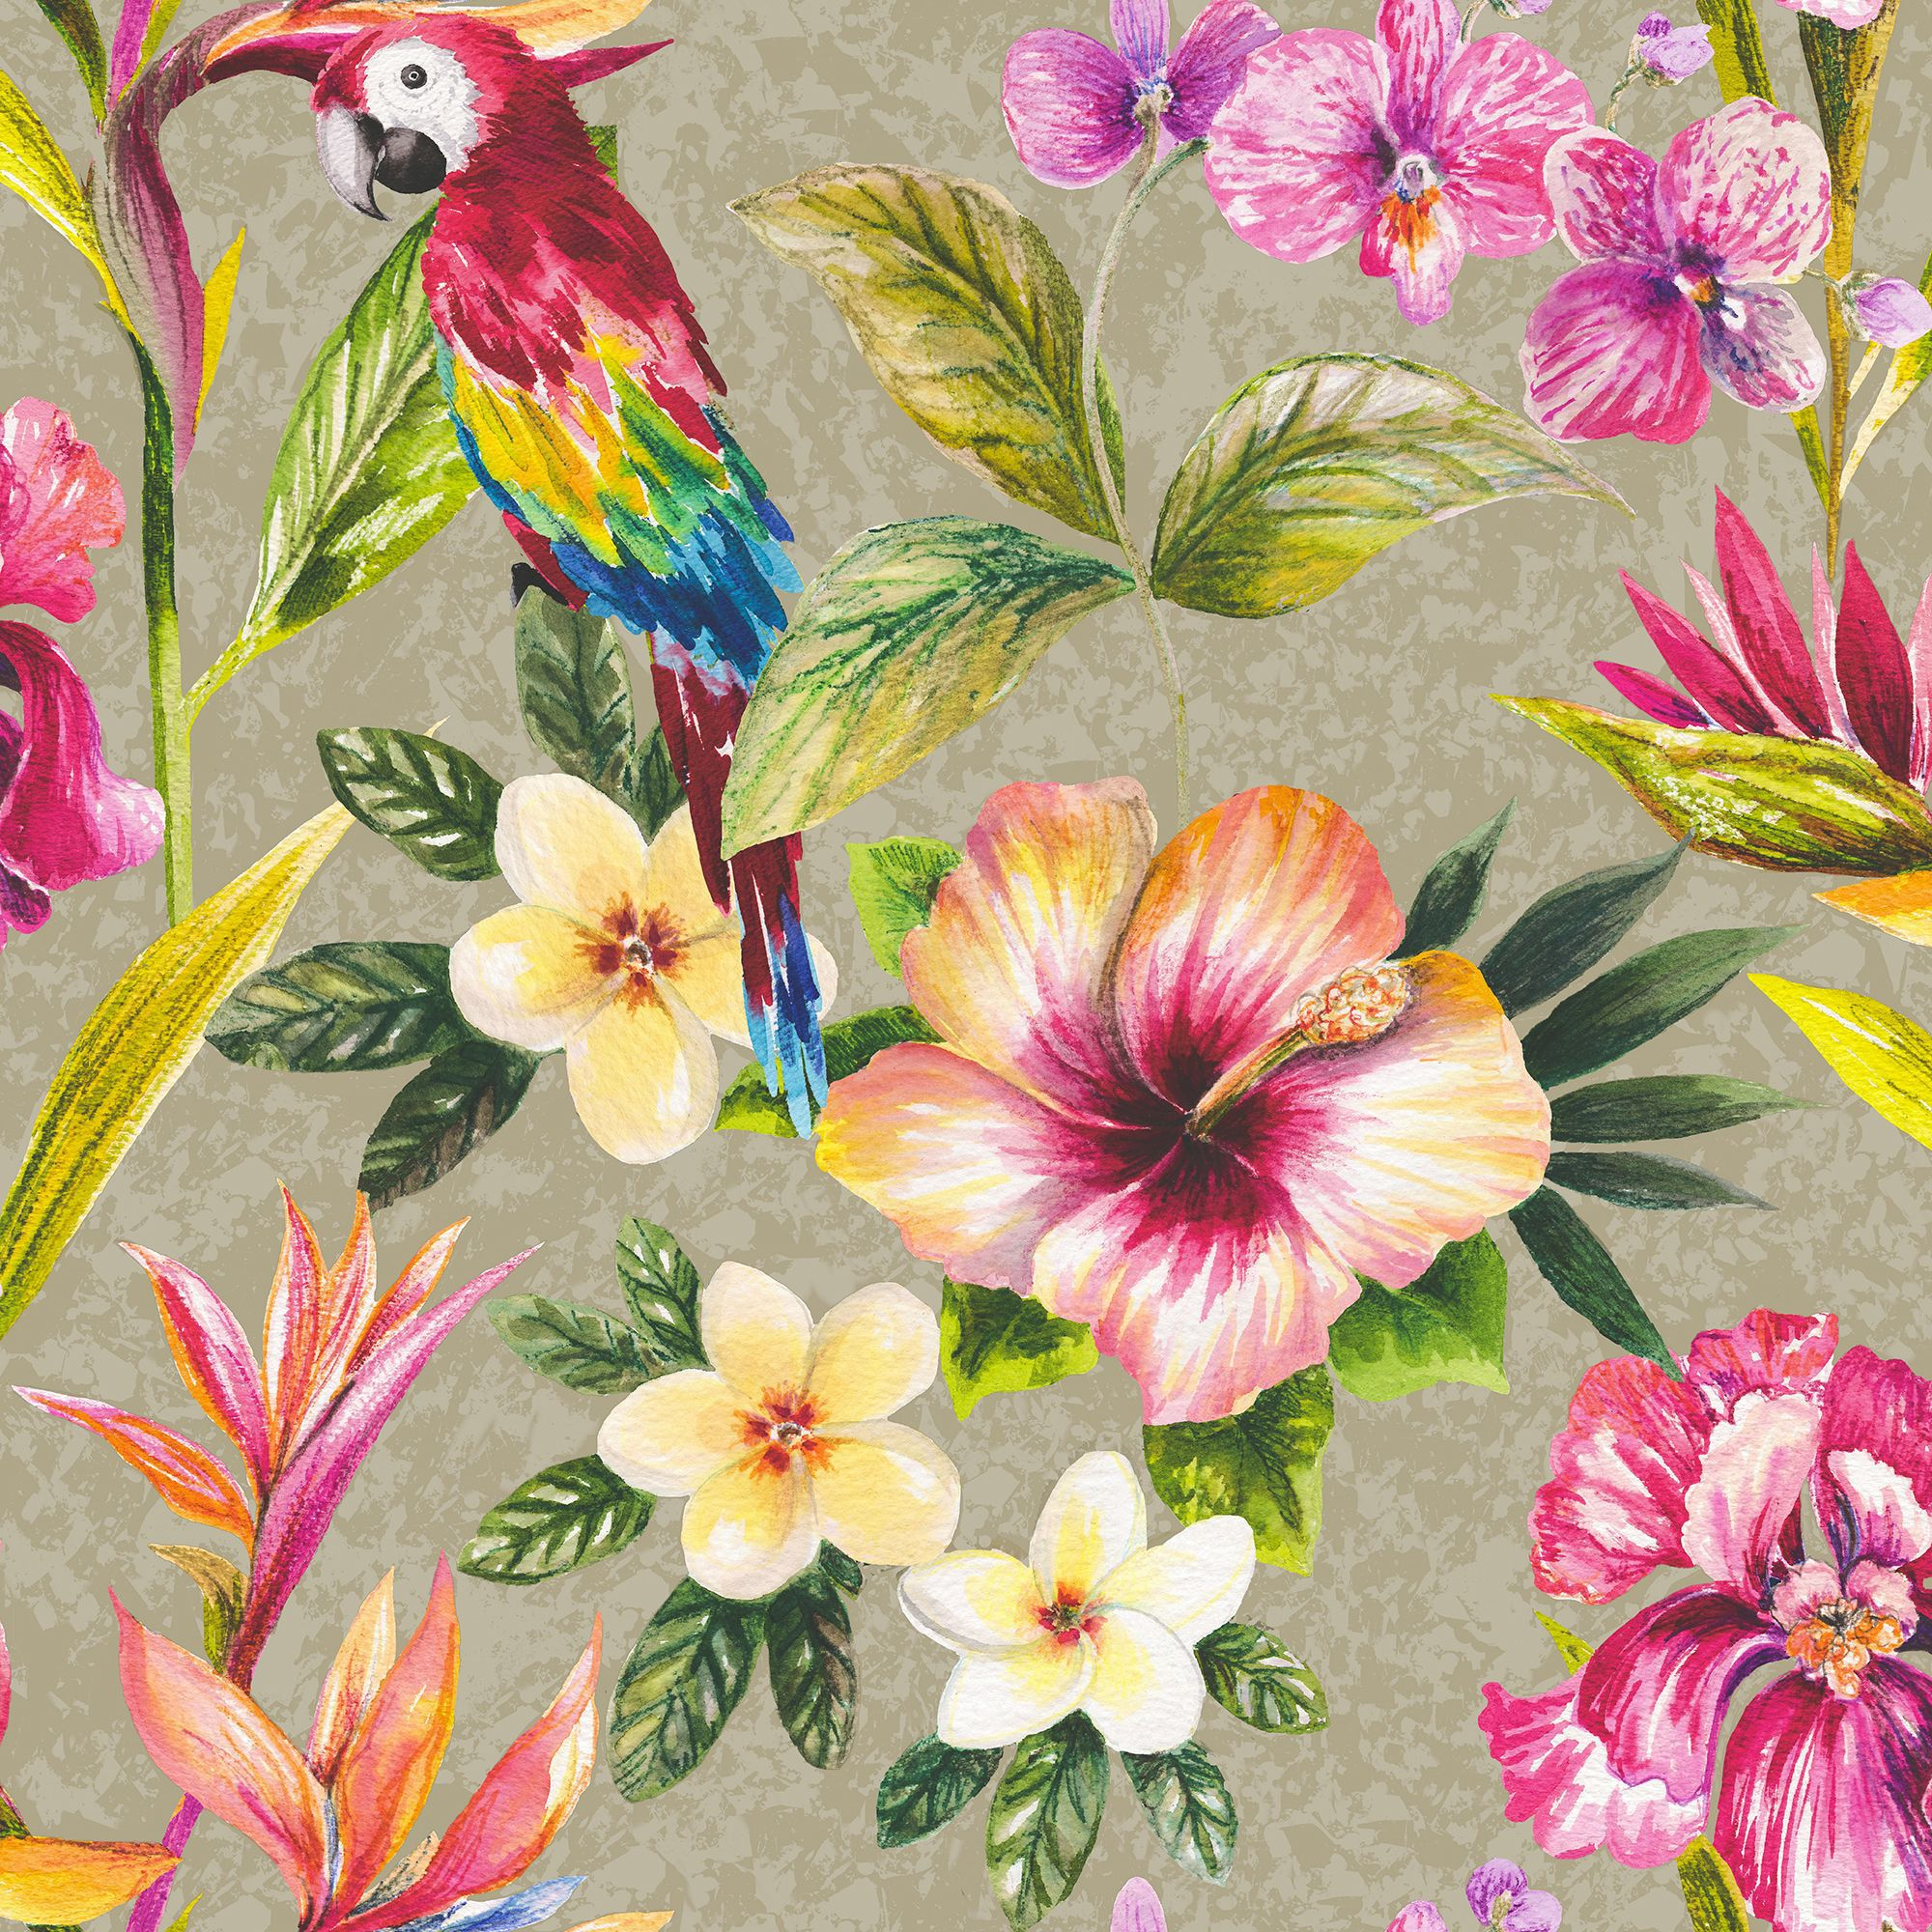 Tropical Parrot Floral Birds Metallic Effect Wallpaper